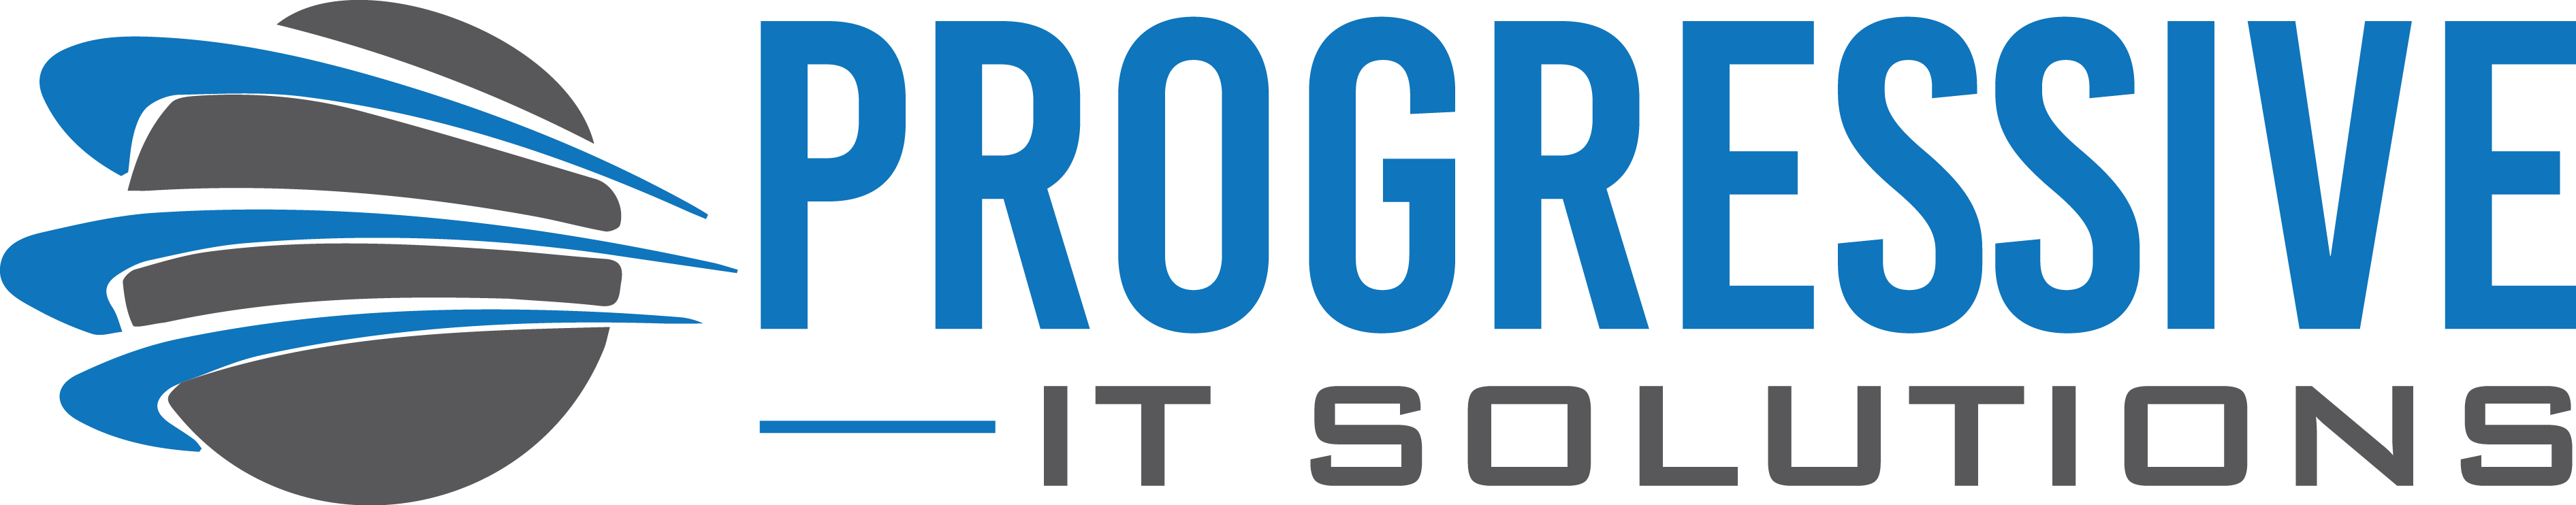 Progressive IT Solutions Logo